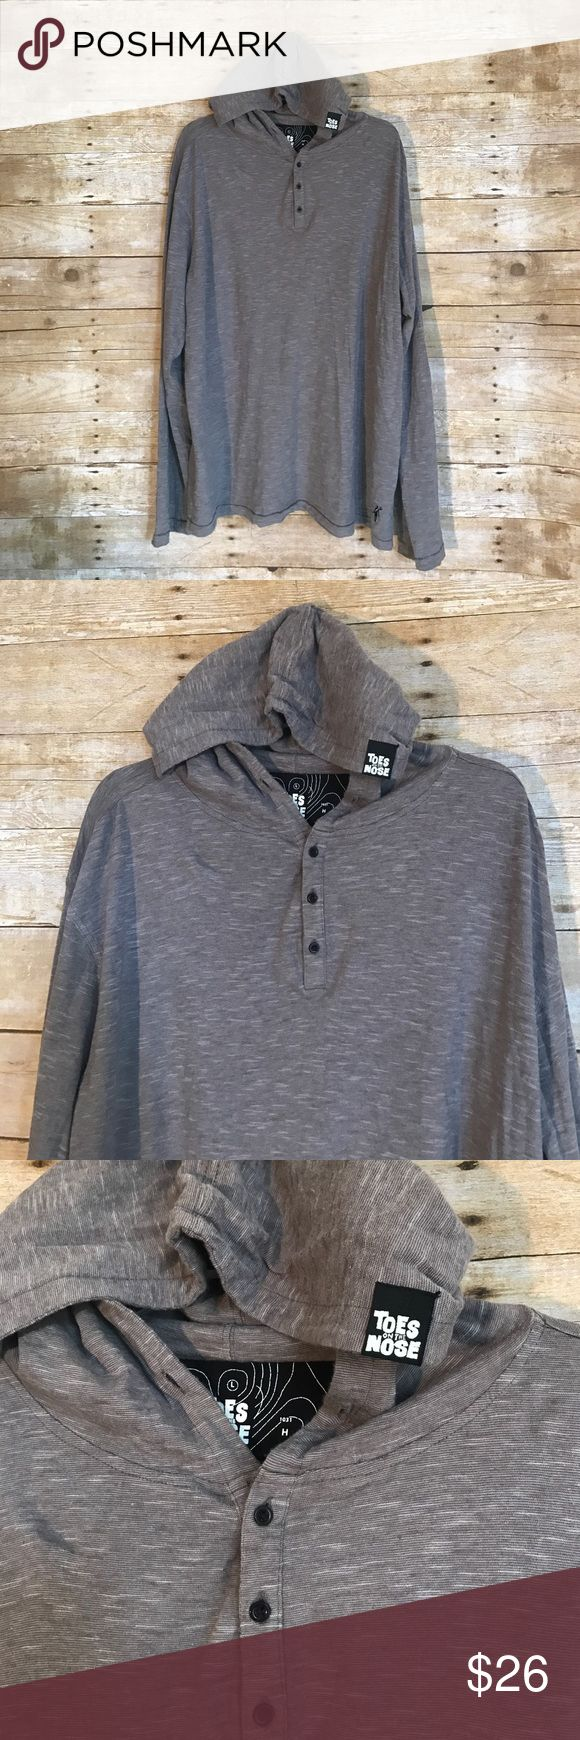 Toes On The Nose Sweater lightweight hoodie XL Toes On The Nose brand - California surf brand - Men's size XL - long sleeve pullover lightweight sweater hoodie - gray with black buttons - excellent condition ‼️FAST SHIPPING ‼️ 🌊 coastal clothing ☀️ Toes on the Nose  Jackets & Coats Lightweight & Shirt Jackets